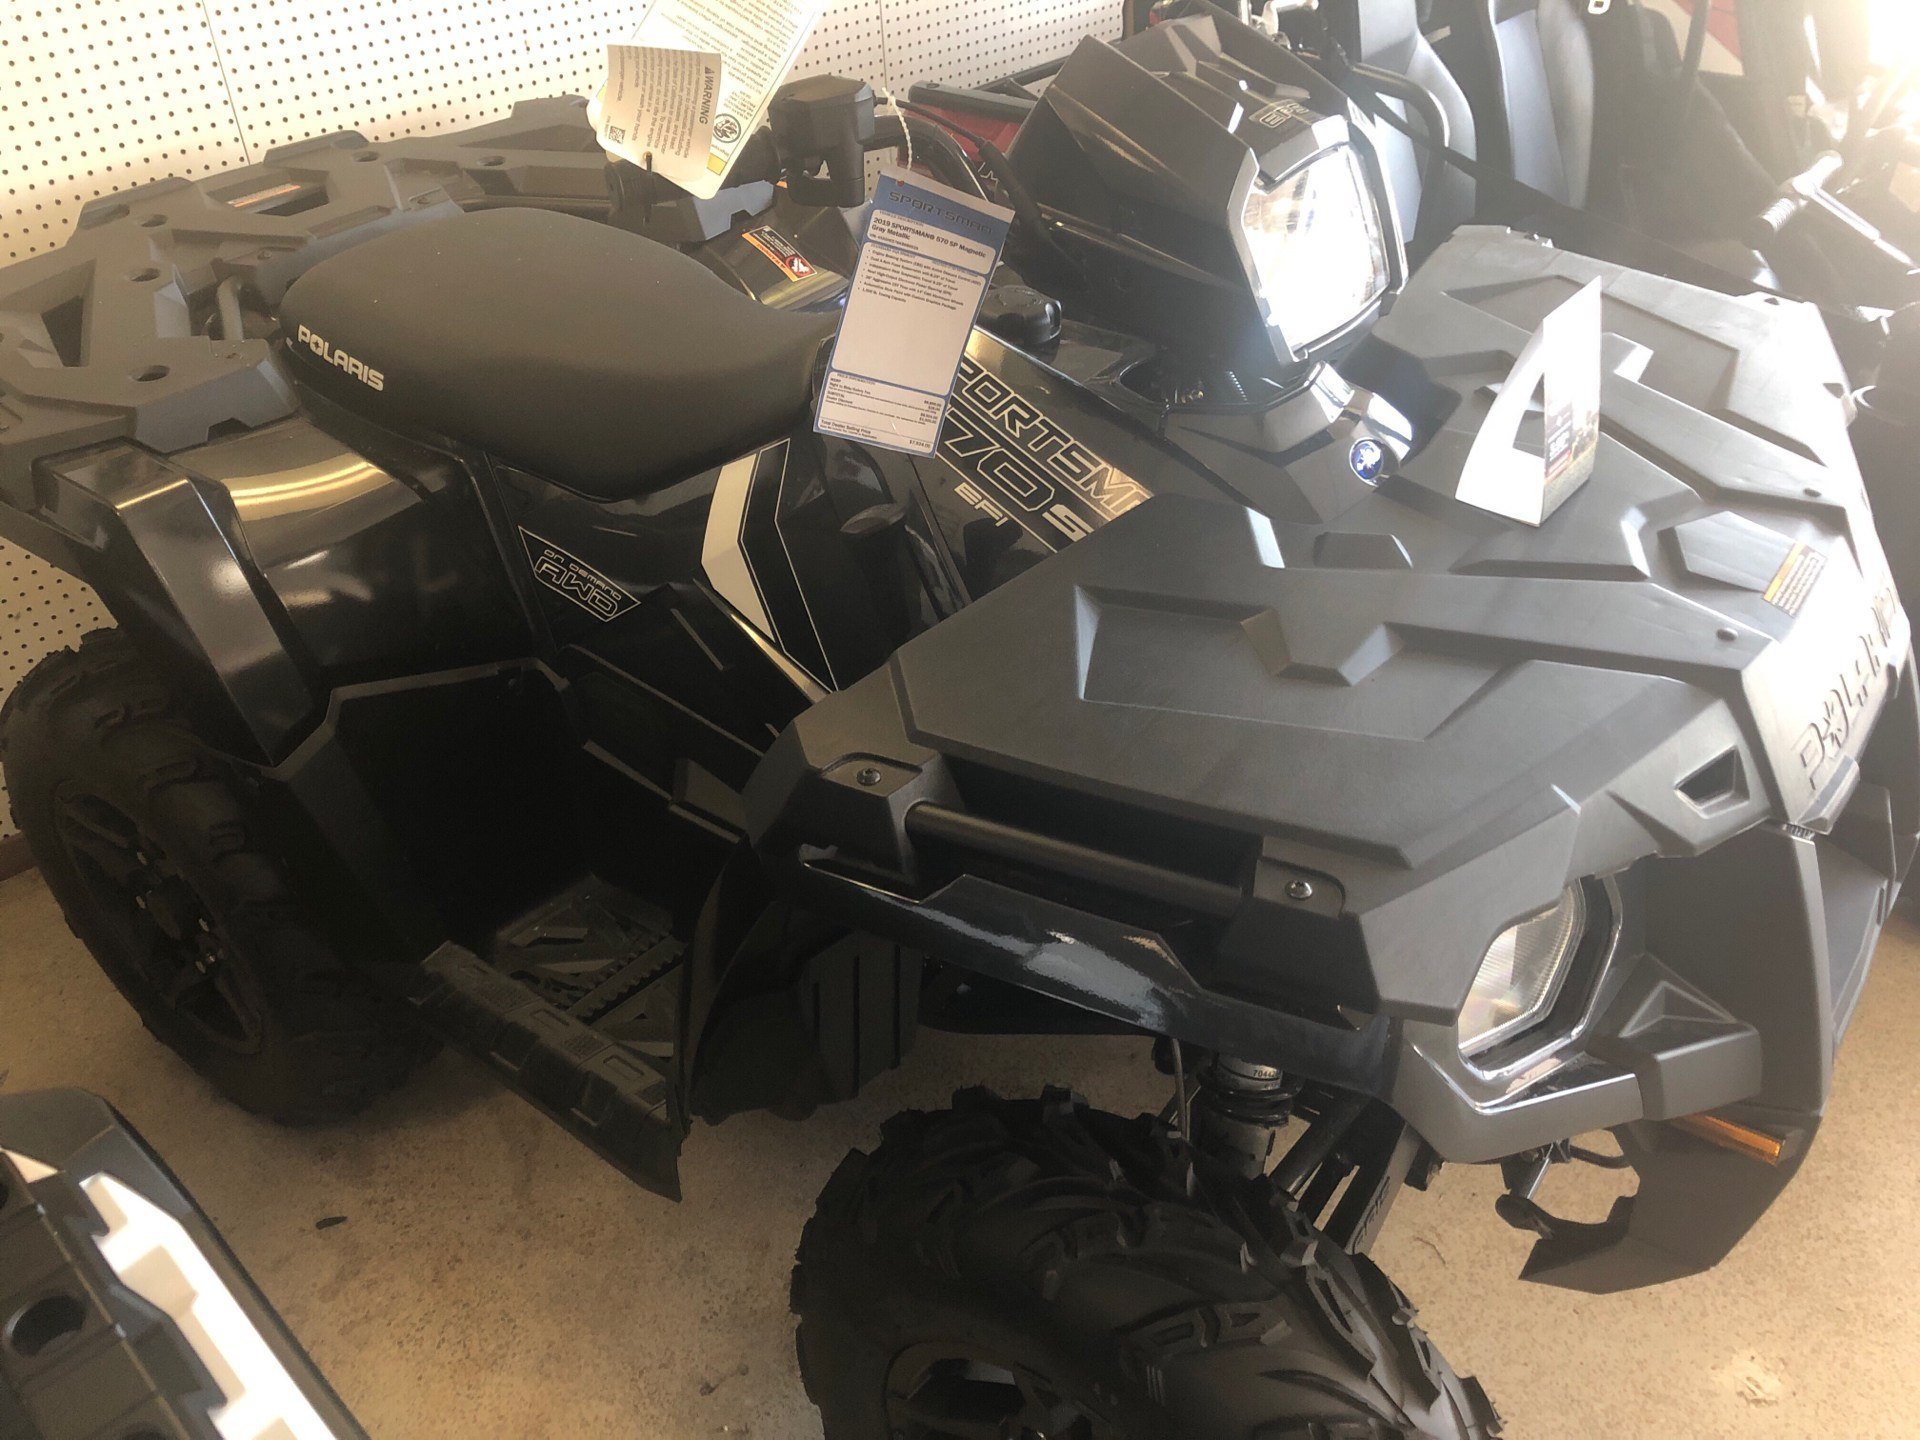 2019 Polaris Sportsman 570 SP in Amory, Mississippi - Photo 1